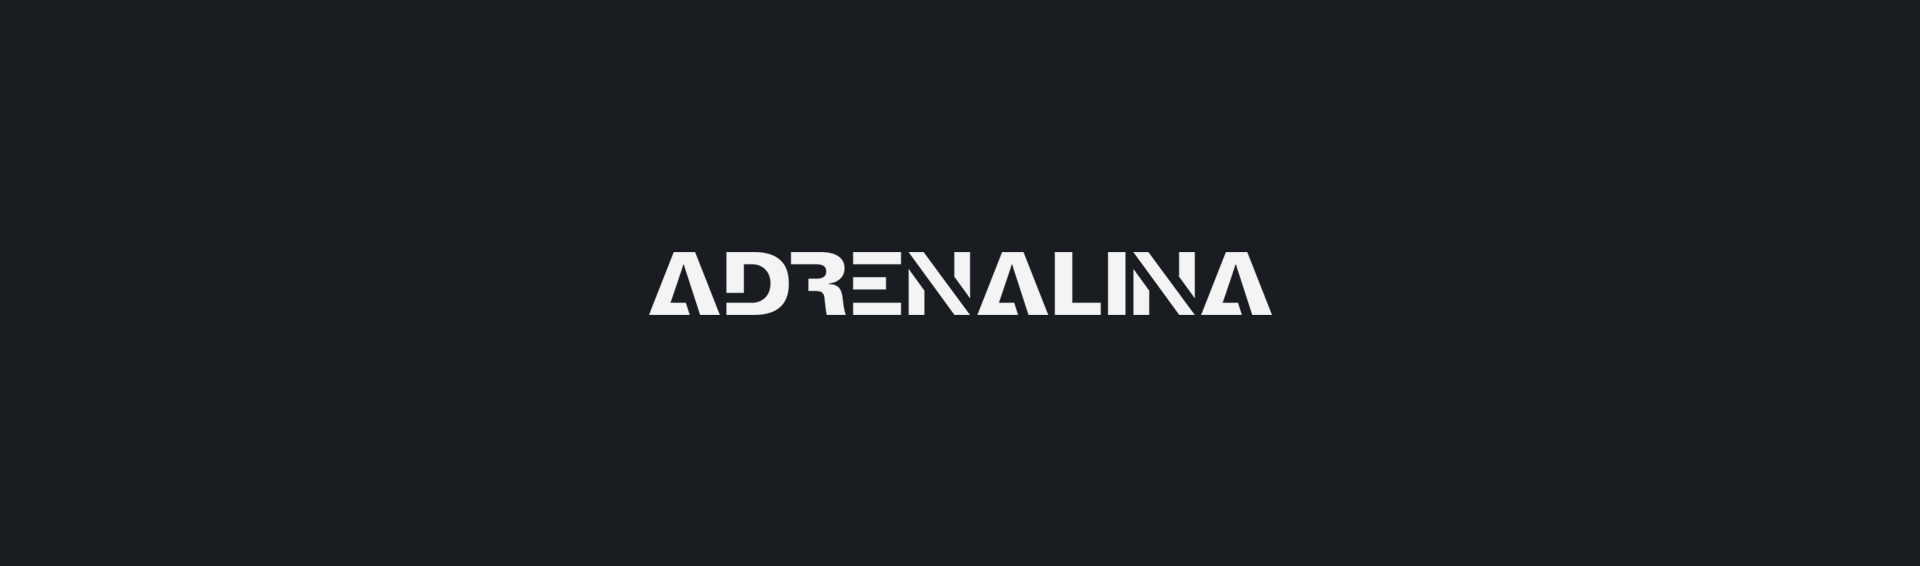 adrenalina_logotype_identity_corporate